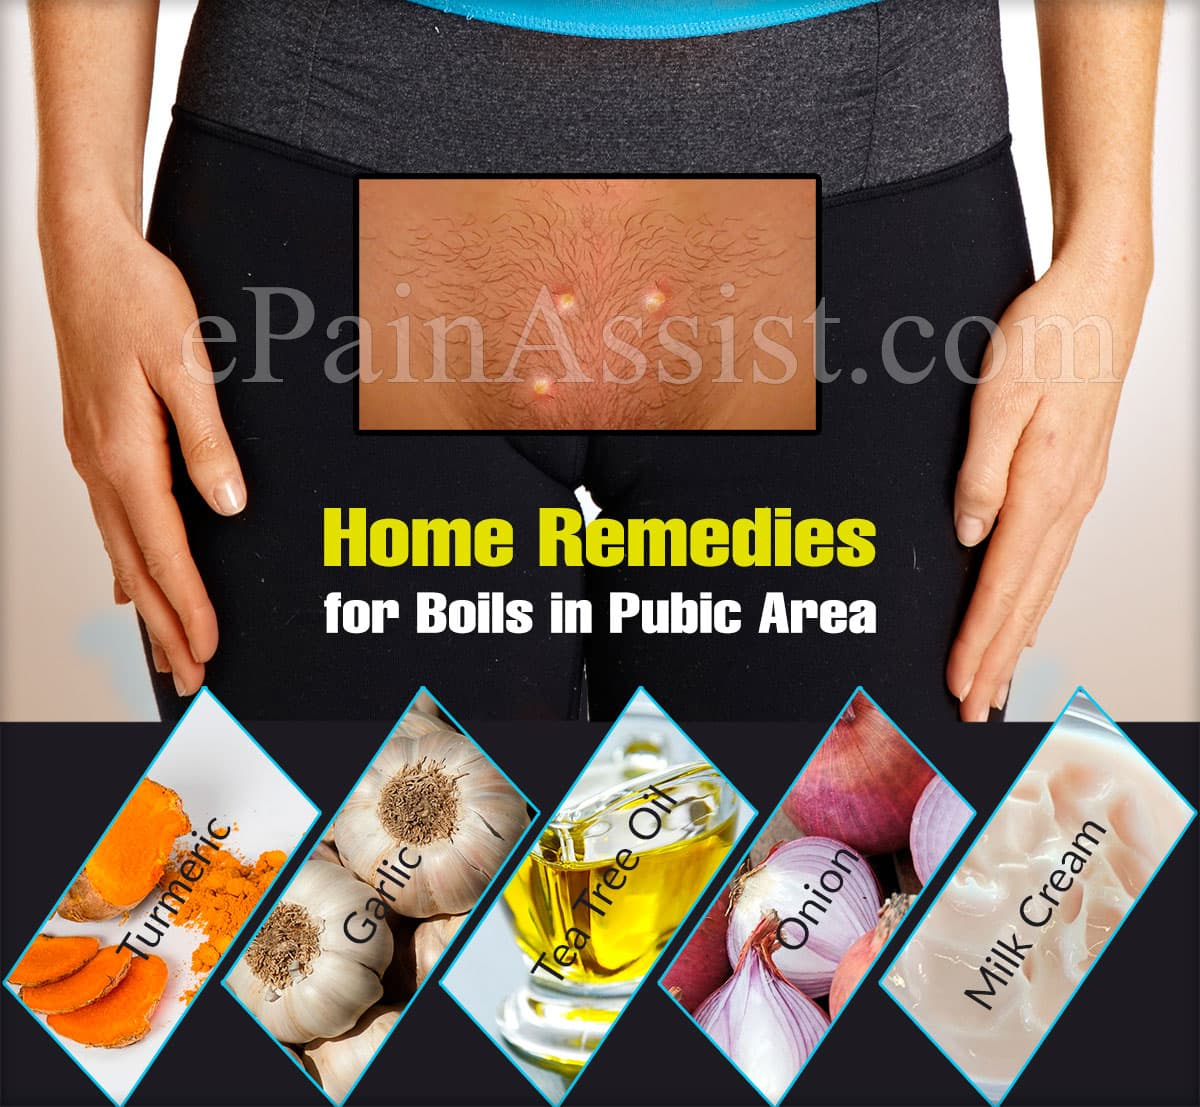 Home Remedies for Boils in Pubic Area